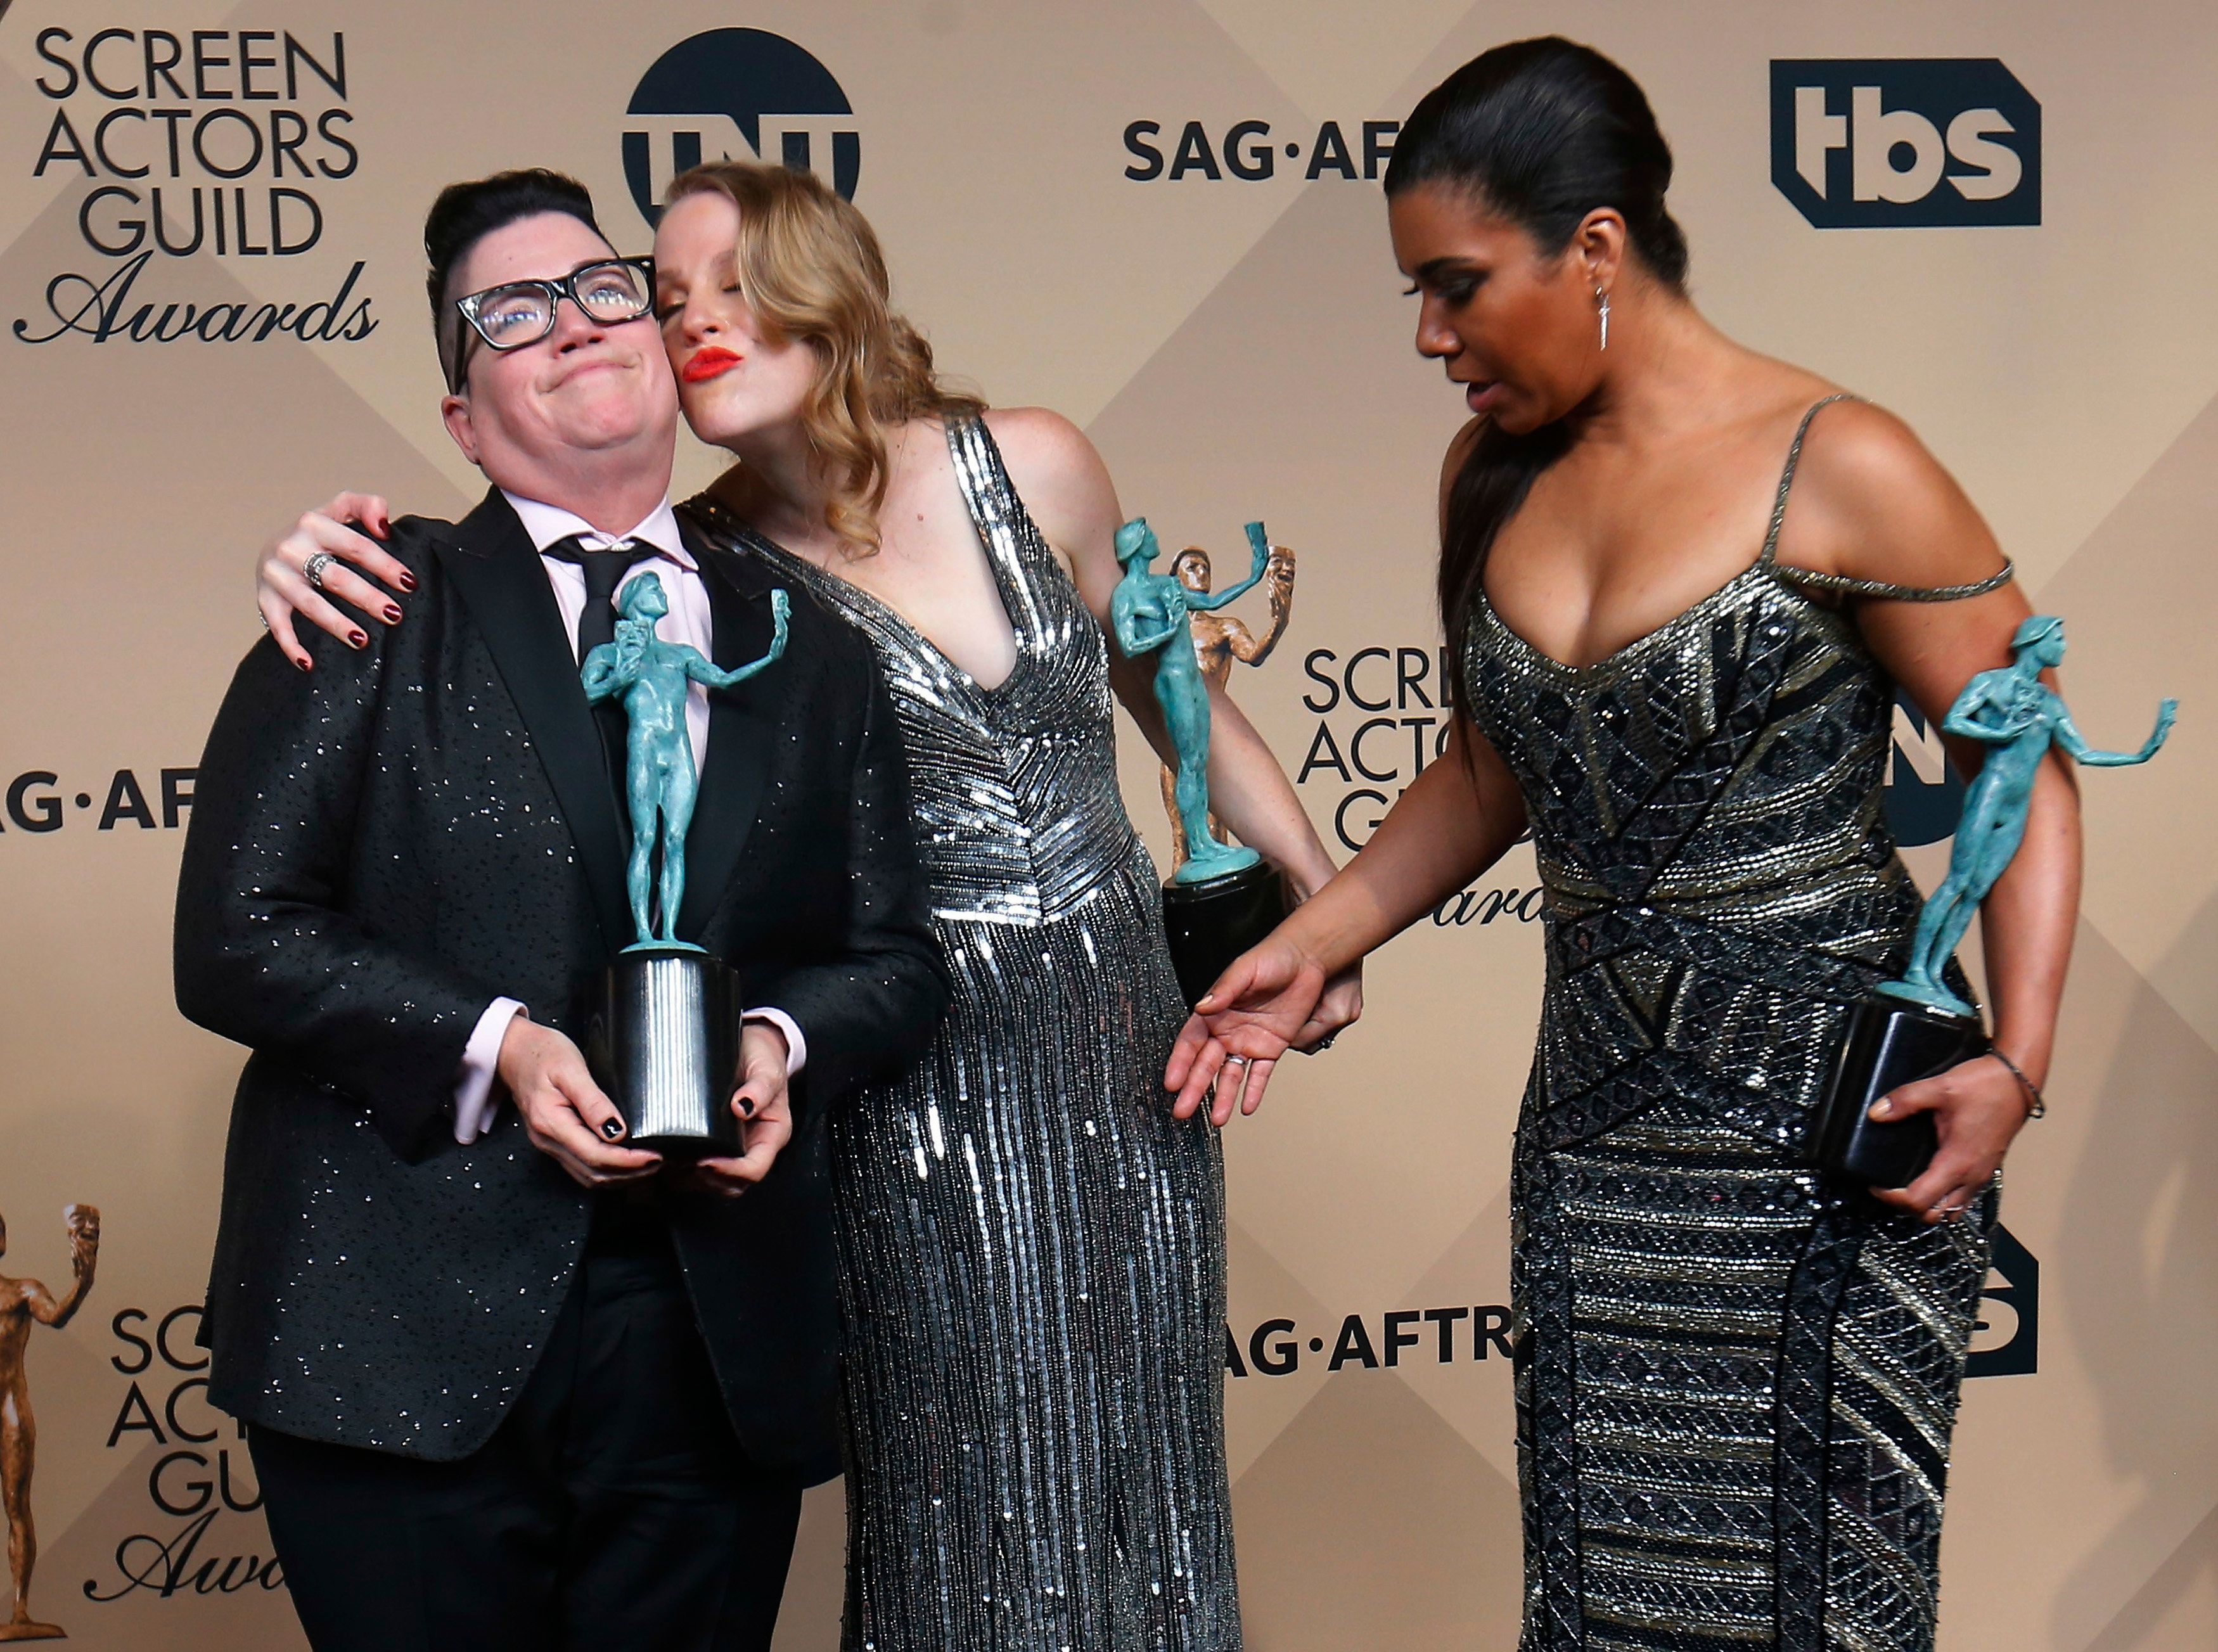 """Actresses Lea DeLaria, Emma Myles and Jessica Pimentel (L to R) of """"Orange is the New Black"""" hold their awards for Outstanding Performance by an Ensemble in a Comedy Series as they pose backstage at the 22nd Screen Actors Guild Awards in Los Angeles, California January 30, 2016.  REUTERS/Mike Blake"""